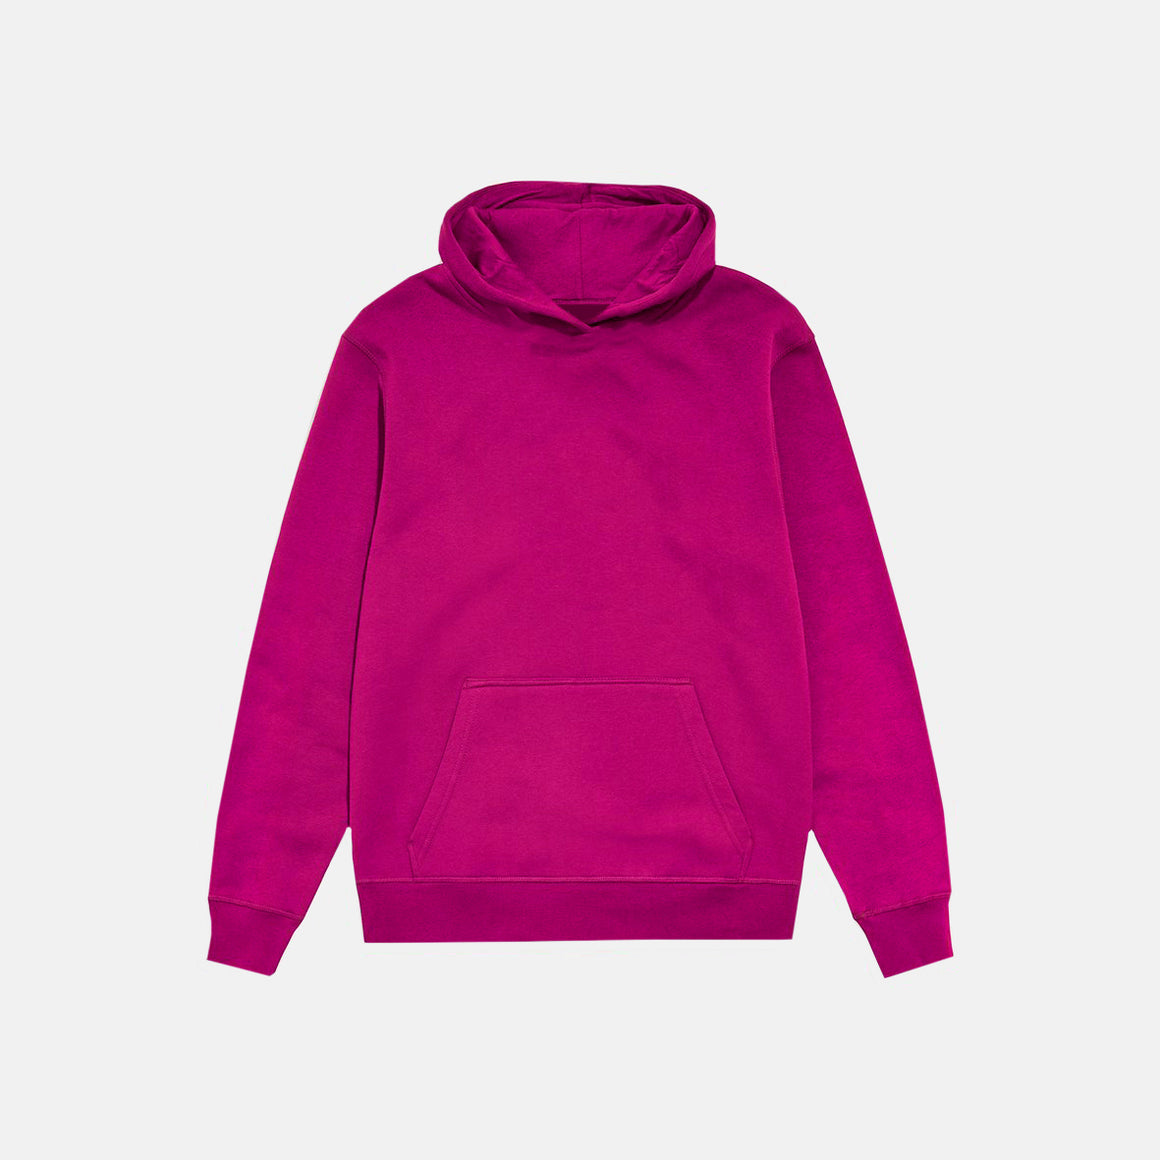 UNBRANDED ESSENTIAL PULLOVER HOODY | HOT FUCHSIA PINK